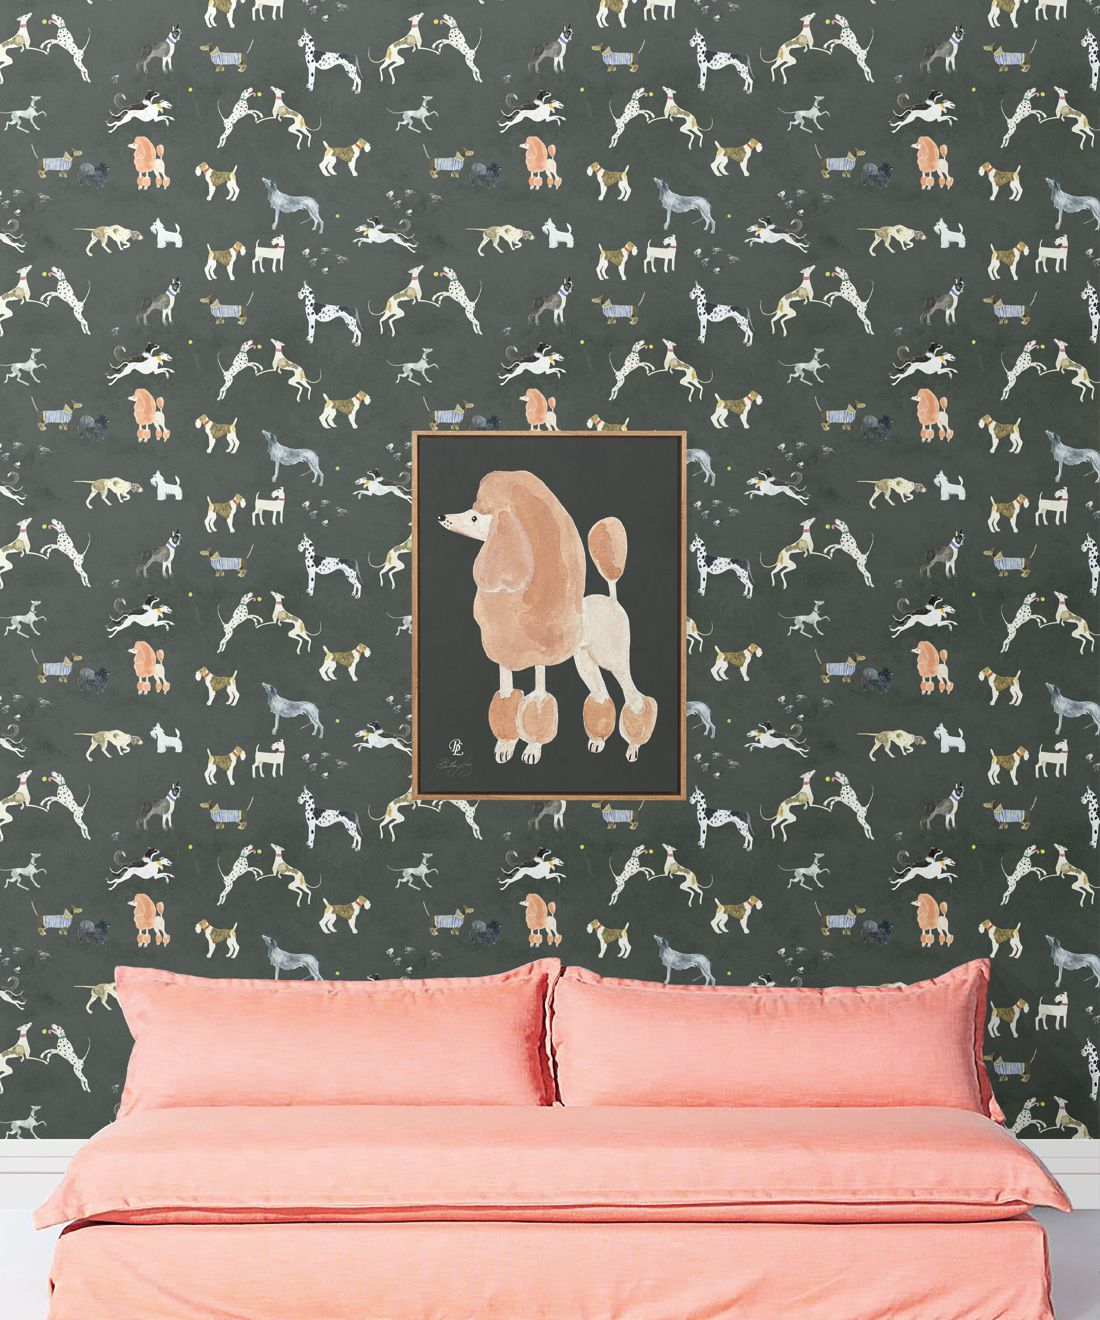 Doggies Wallpaper • Dog Wallpaper • Charcoal • Insitu with pink sofa